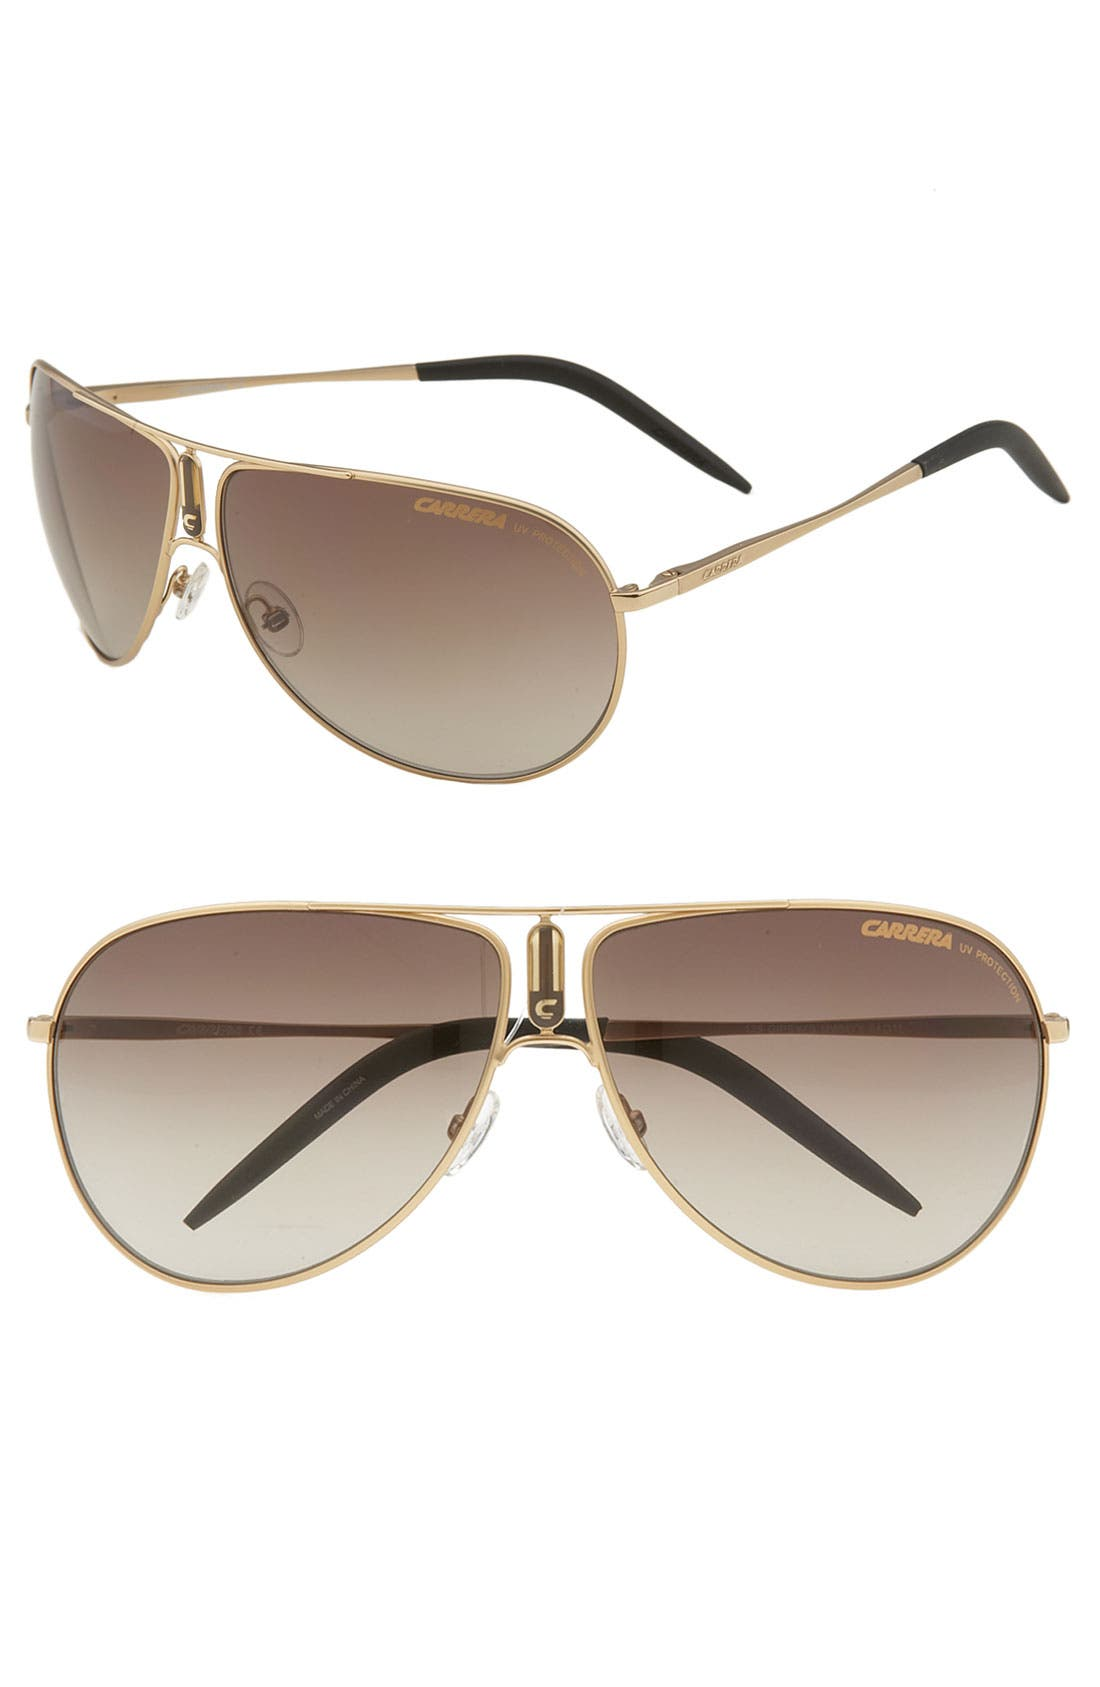 Main Image - Carrera Eyewear 'Gypsy' Metal Aviator Sunglasses